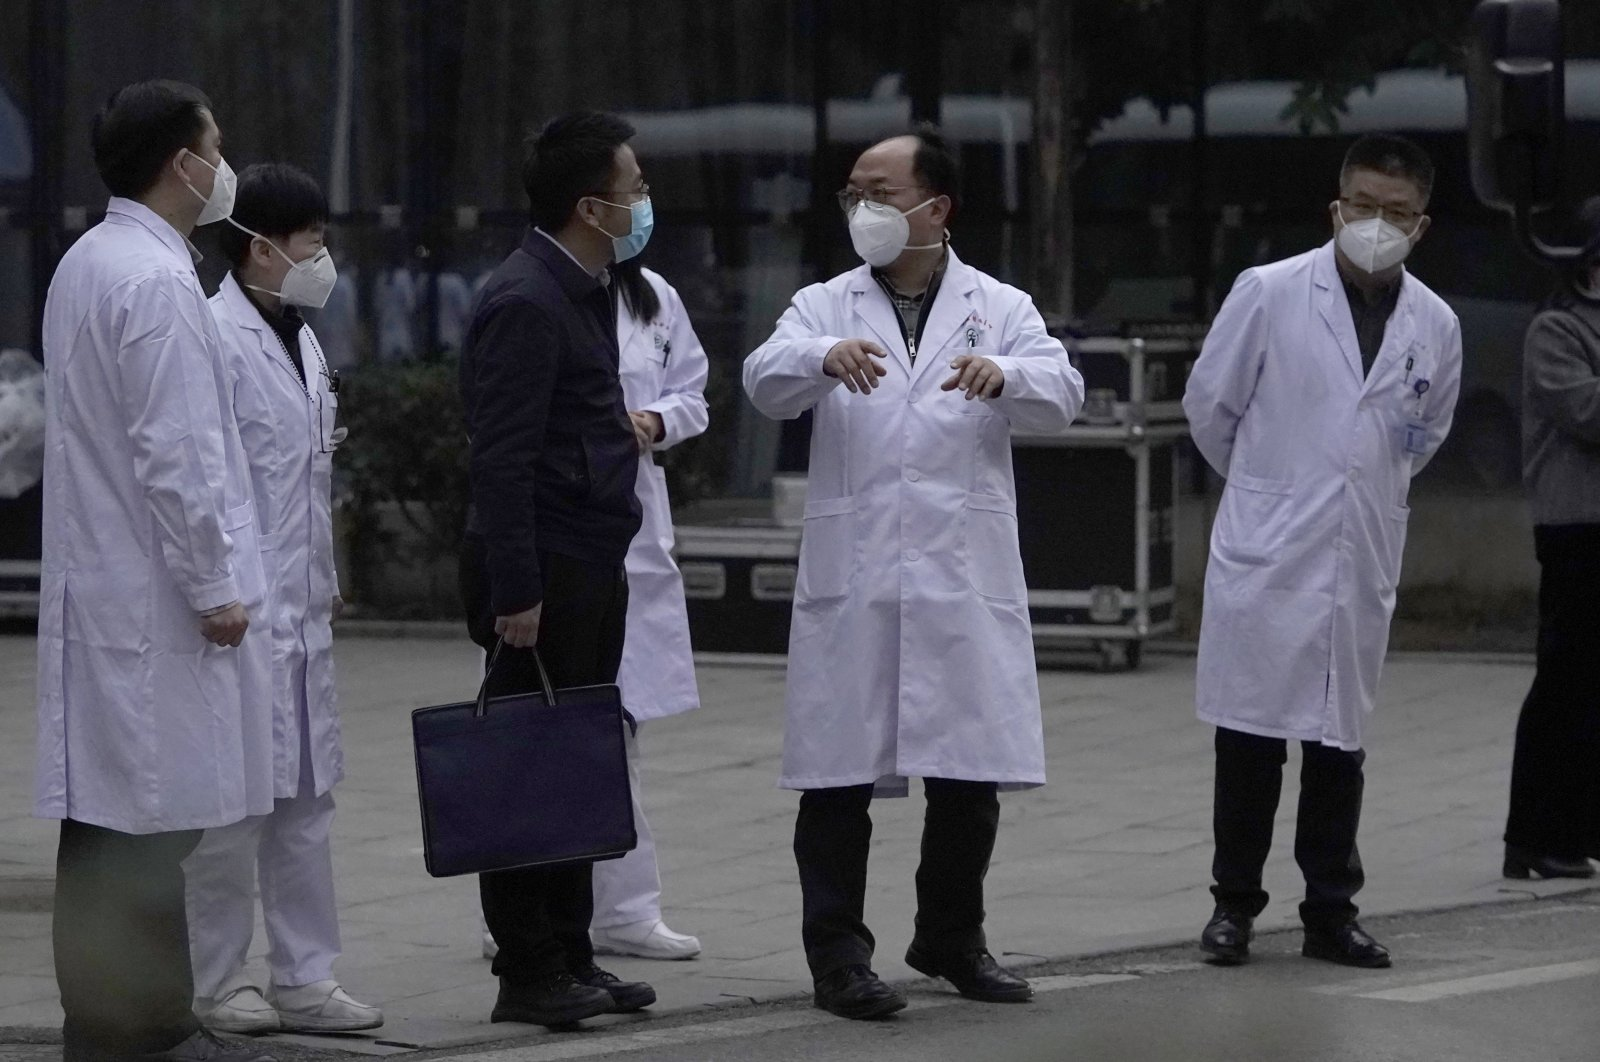 Chinese medical staff react as the World Health Organization (WHO) team leave after their visit to the Hubei Provincial Hospital of Integrated Chinese and Western Medicine, in Wuhan, China, Jan. 29, 2021. (AP Photo)